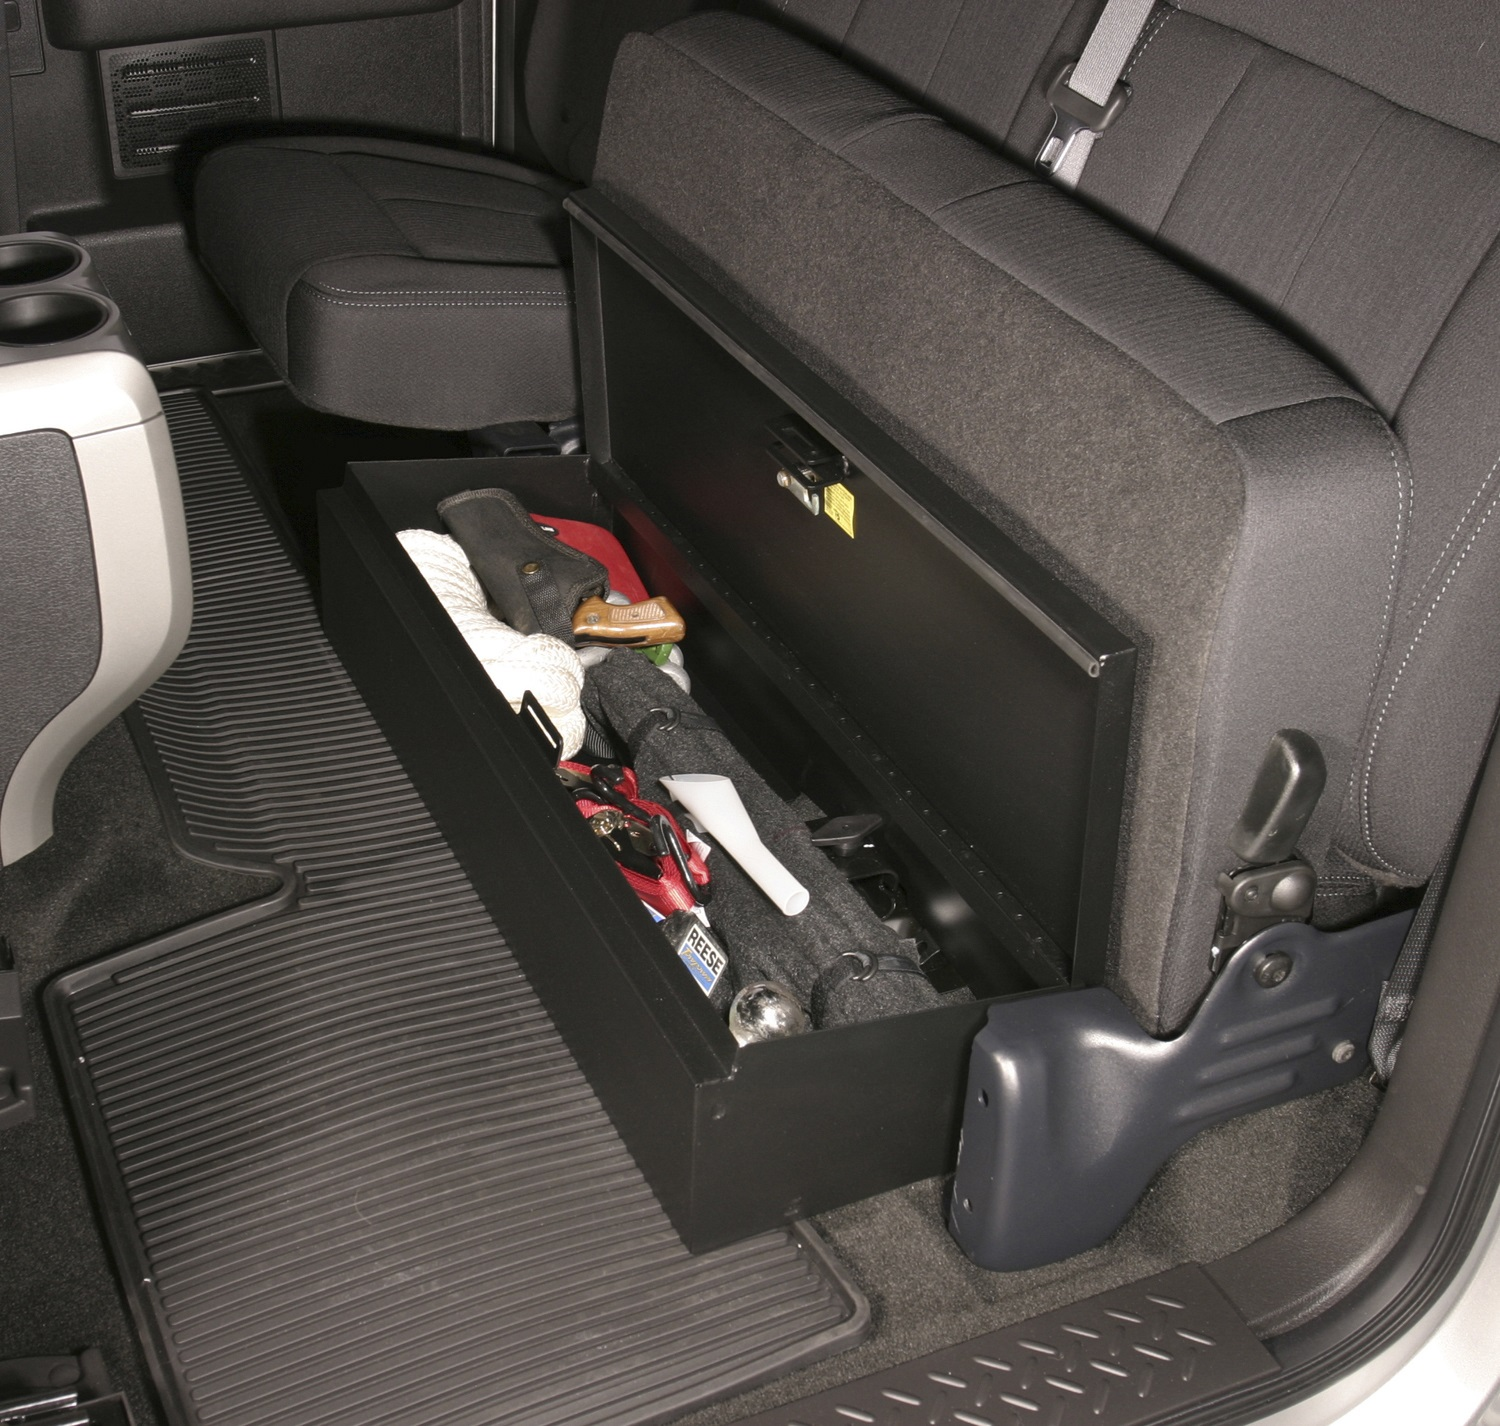 new tuffy security underseat lockbox 09 13 f 150 pickup interior storage ford tb. Black Bedroom Furniture Sets. Home Design Ideas